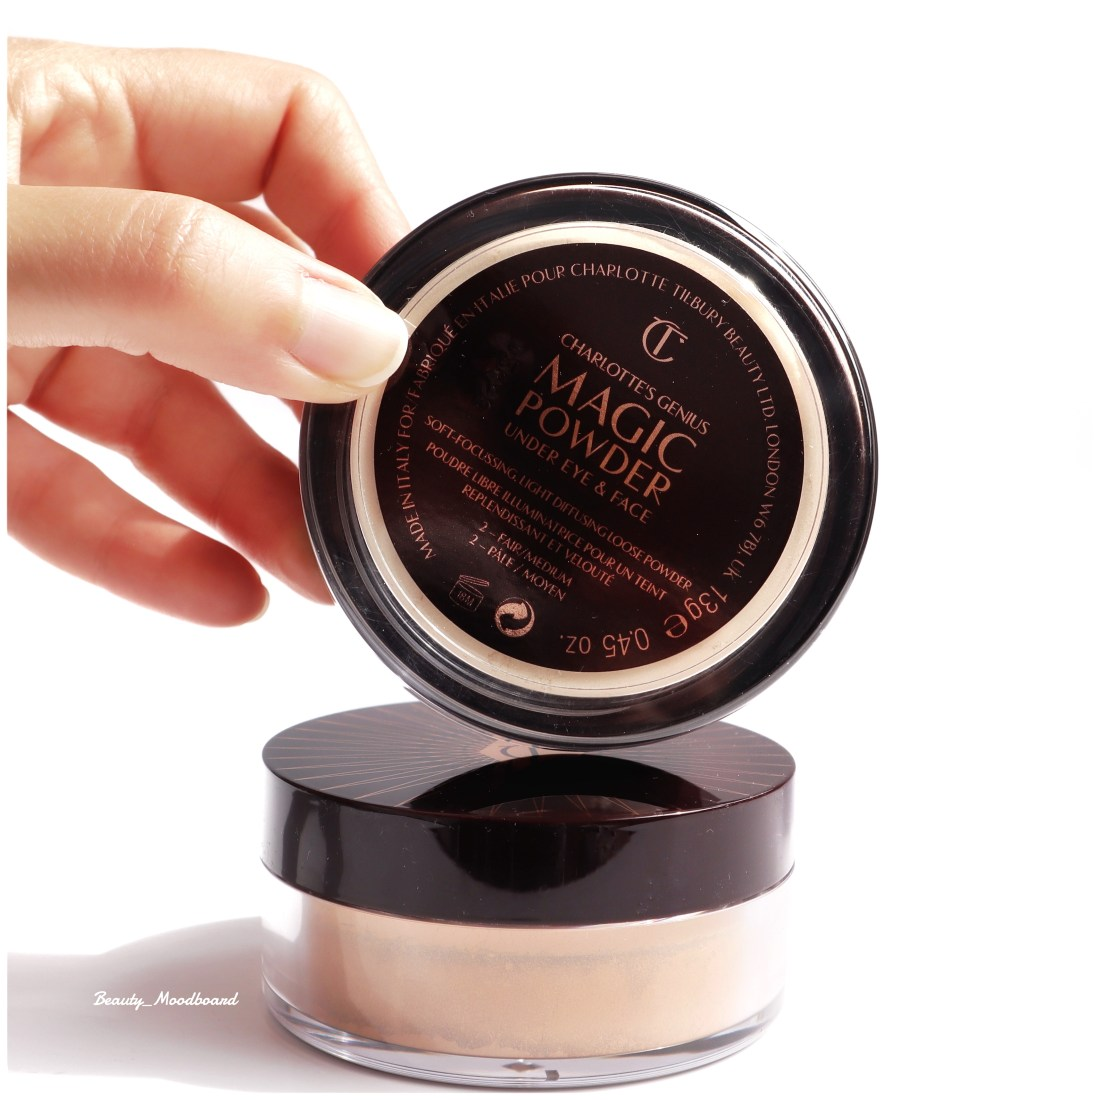 Poudre libre Charlotte Tilbury Charlotte's Genius Magic Powder review and swatch